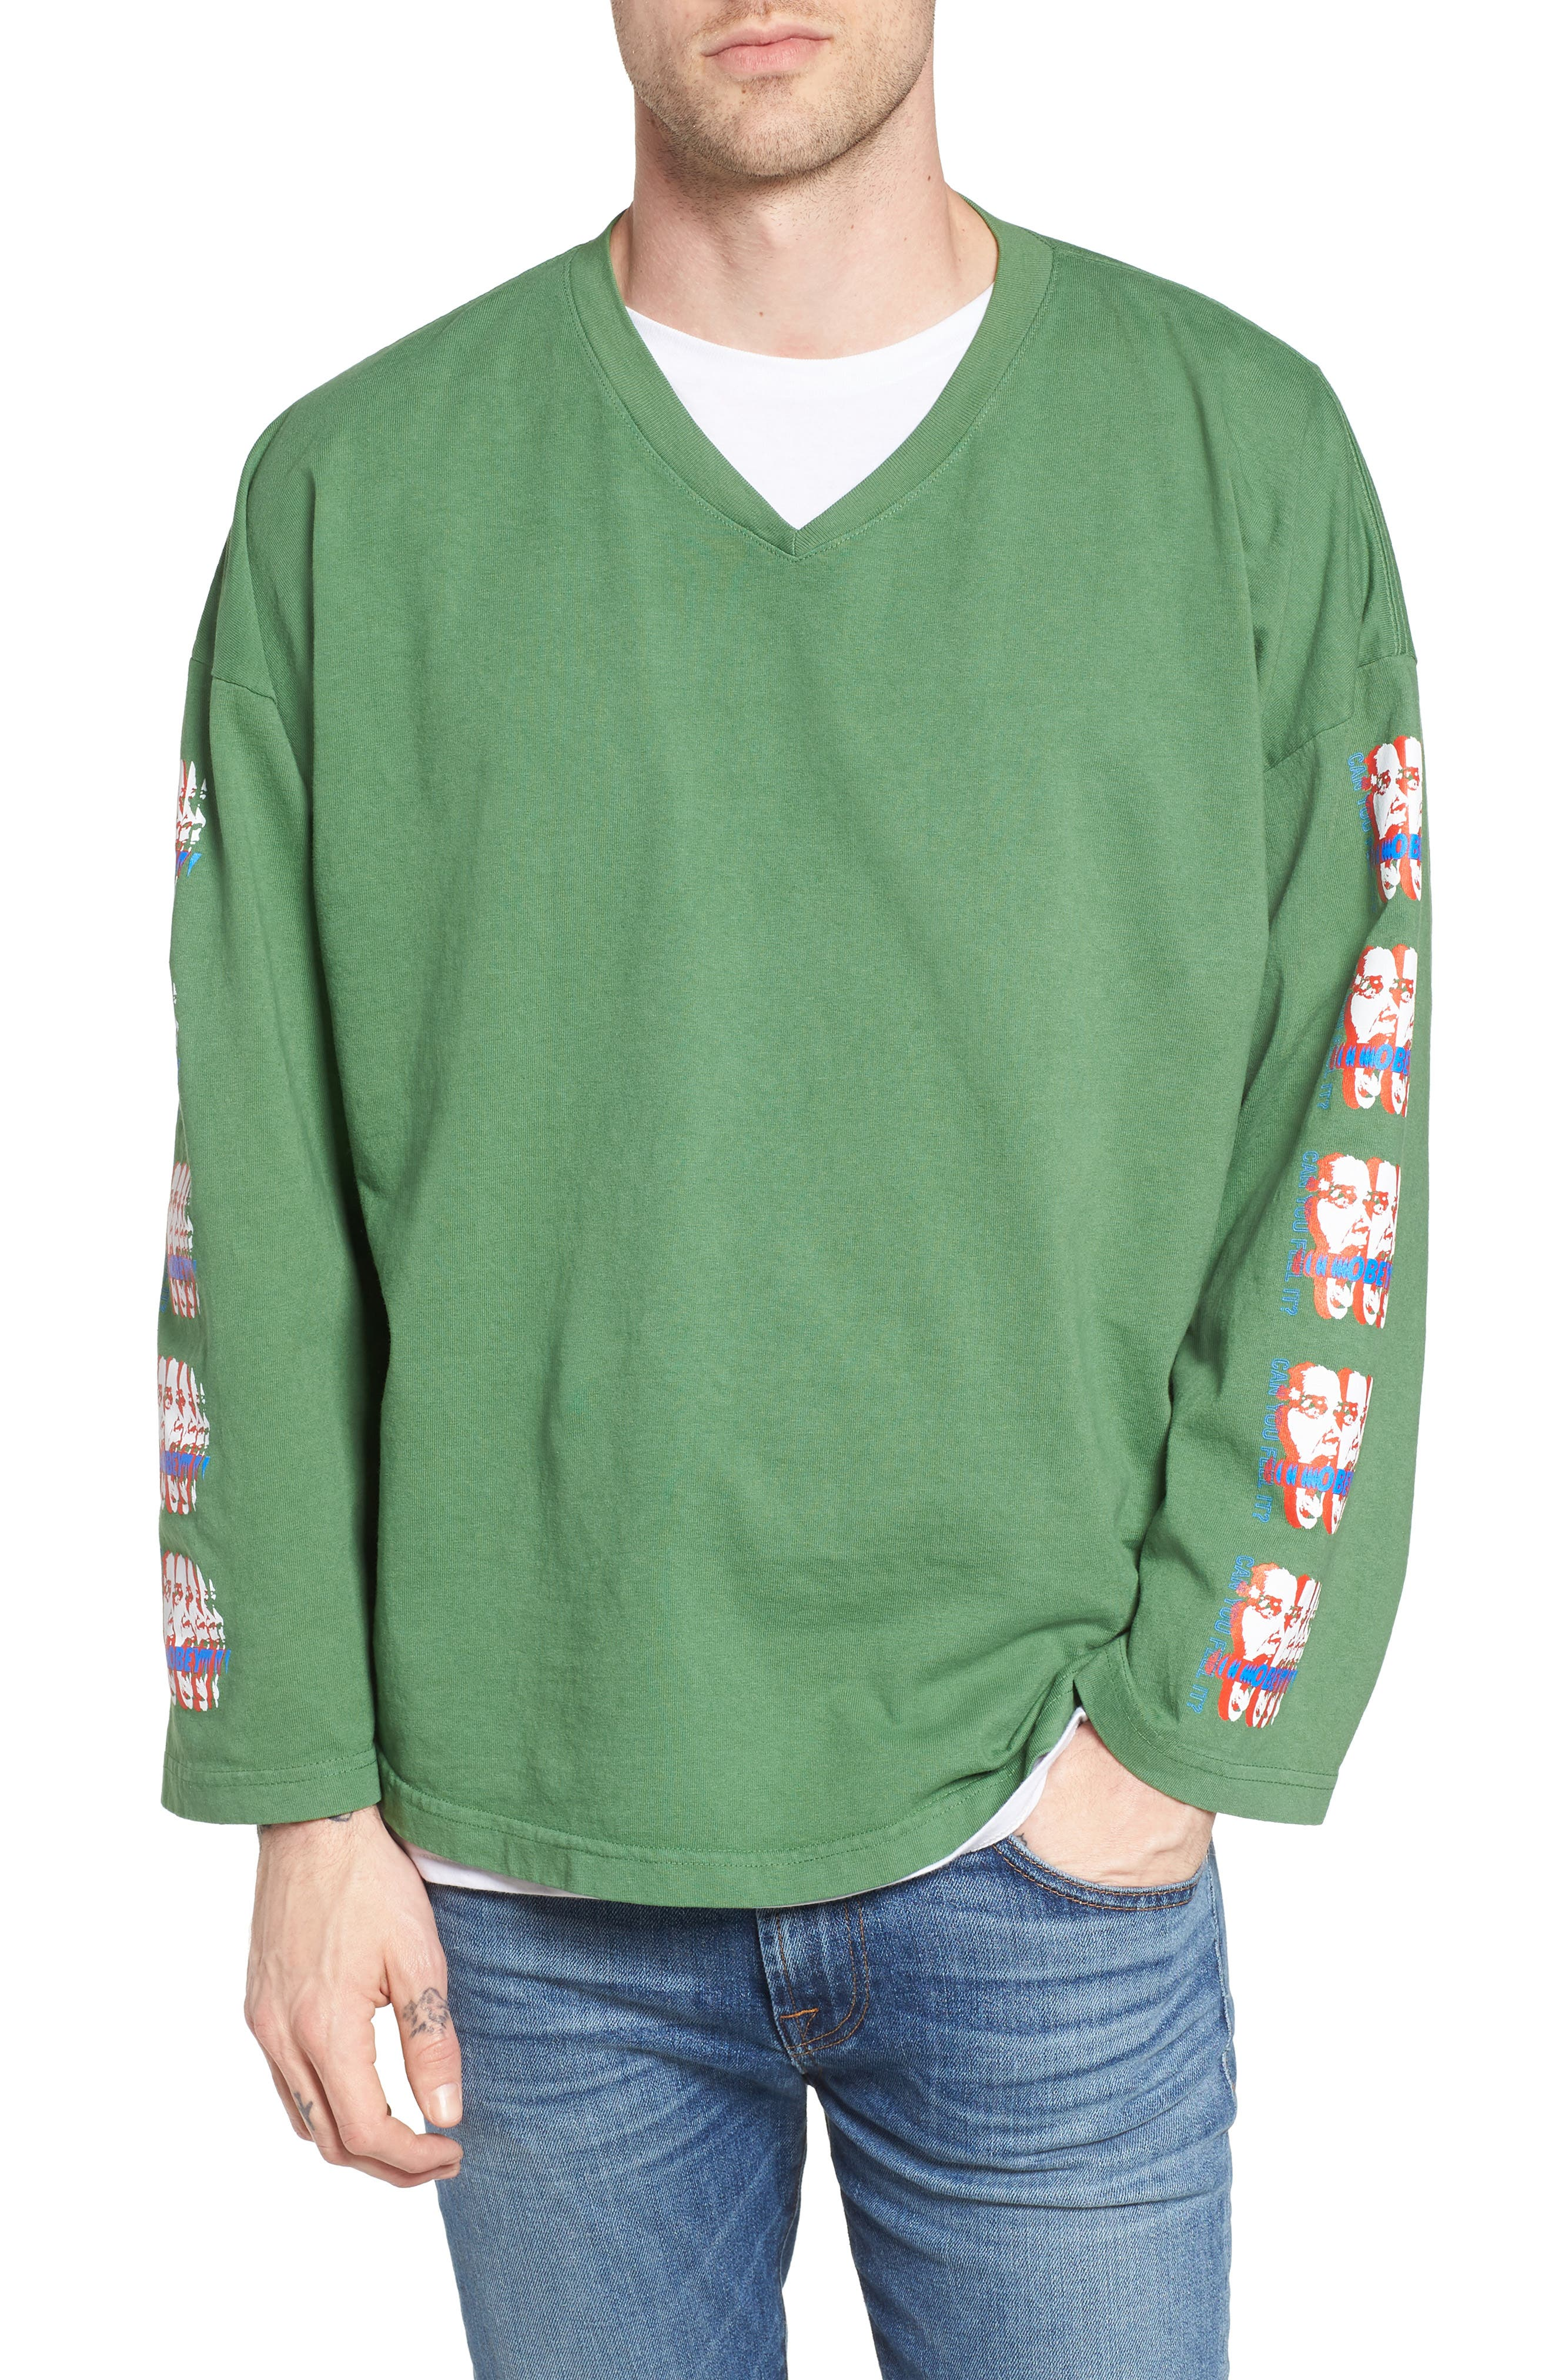 Can You Feel It Hockey Jersey,                             Main thumbnail 1, color,                             Vintage Green